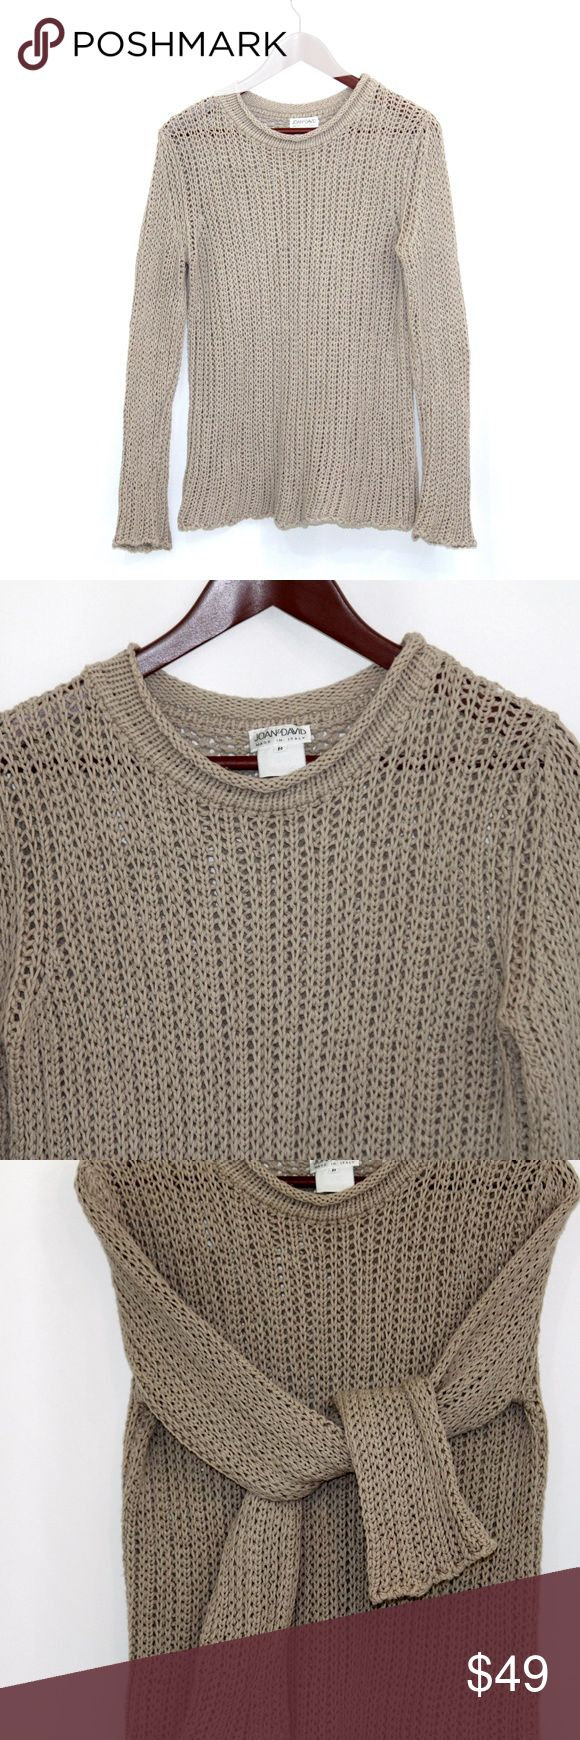 "Joan & David Crewneck Taupe Sweater Size M Joan & David Crewneck Taupe Sweater  Retail Value $168.00  CONDITION  Excellent Flawless Pre-Owned    DESCRIPTION  MADE IN ITALY Size: M Material: No info ~ Looks like 100% Cotton  Measurements: Shoulders: 17""                           Chest: (armpit to armpit): 19""                           Length: 26"" Joan & David Sweaters Crew & Scoop Necks"